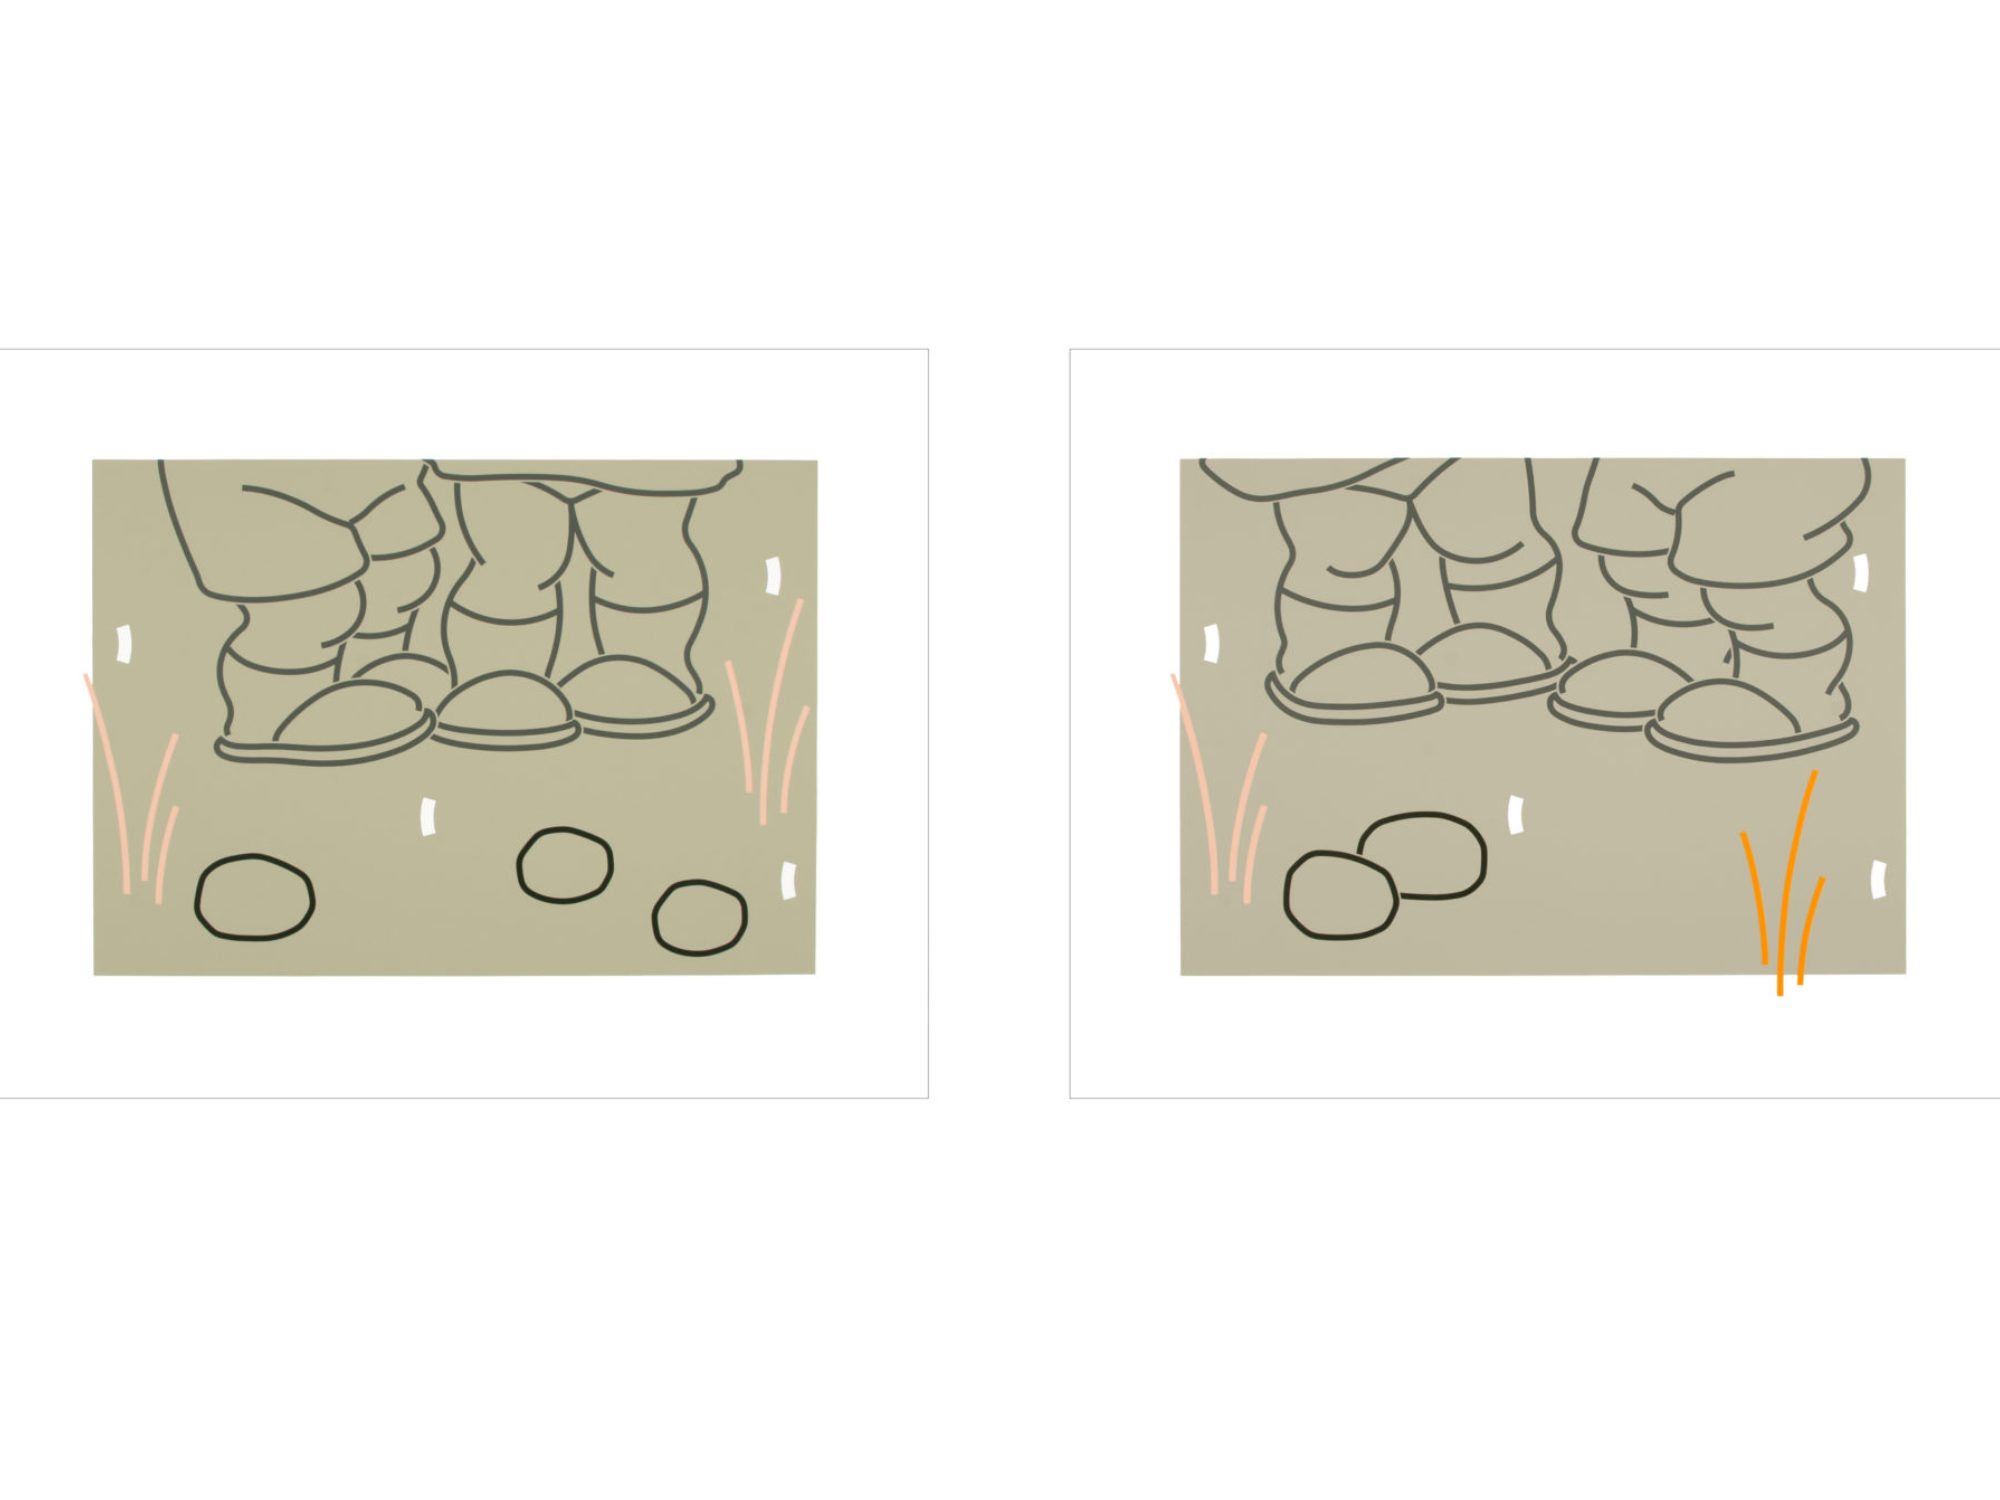 Two prints side by side featuring two sets of feet, grass, and stone in a muted color palette